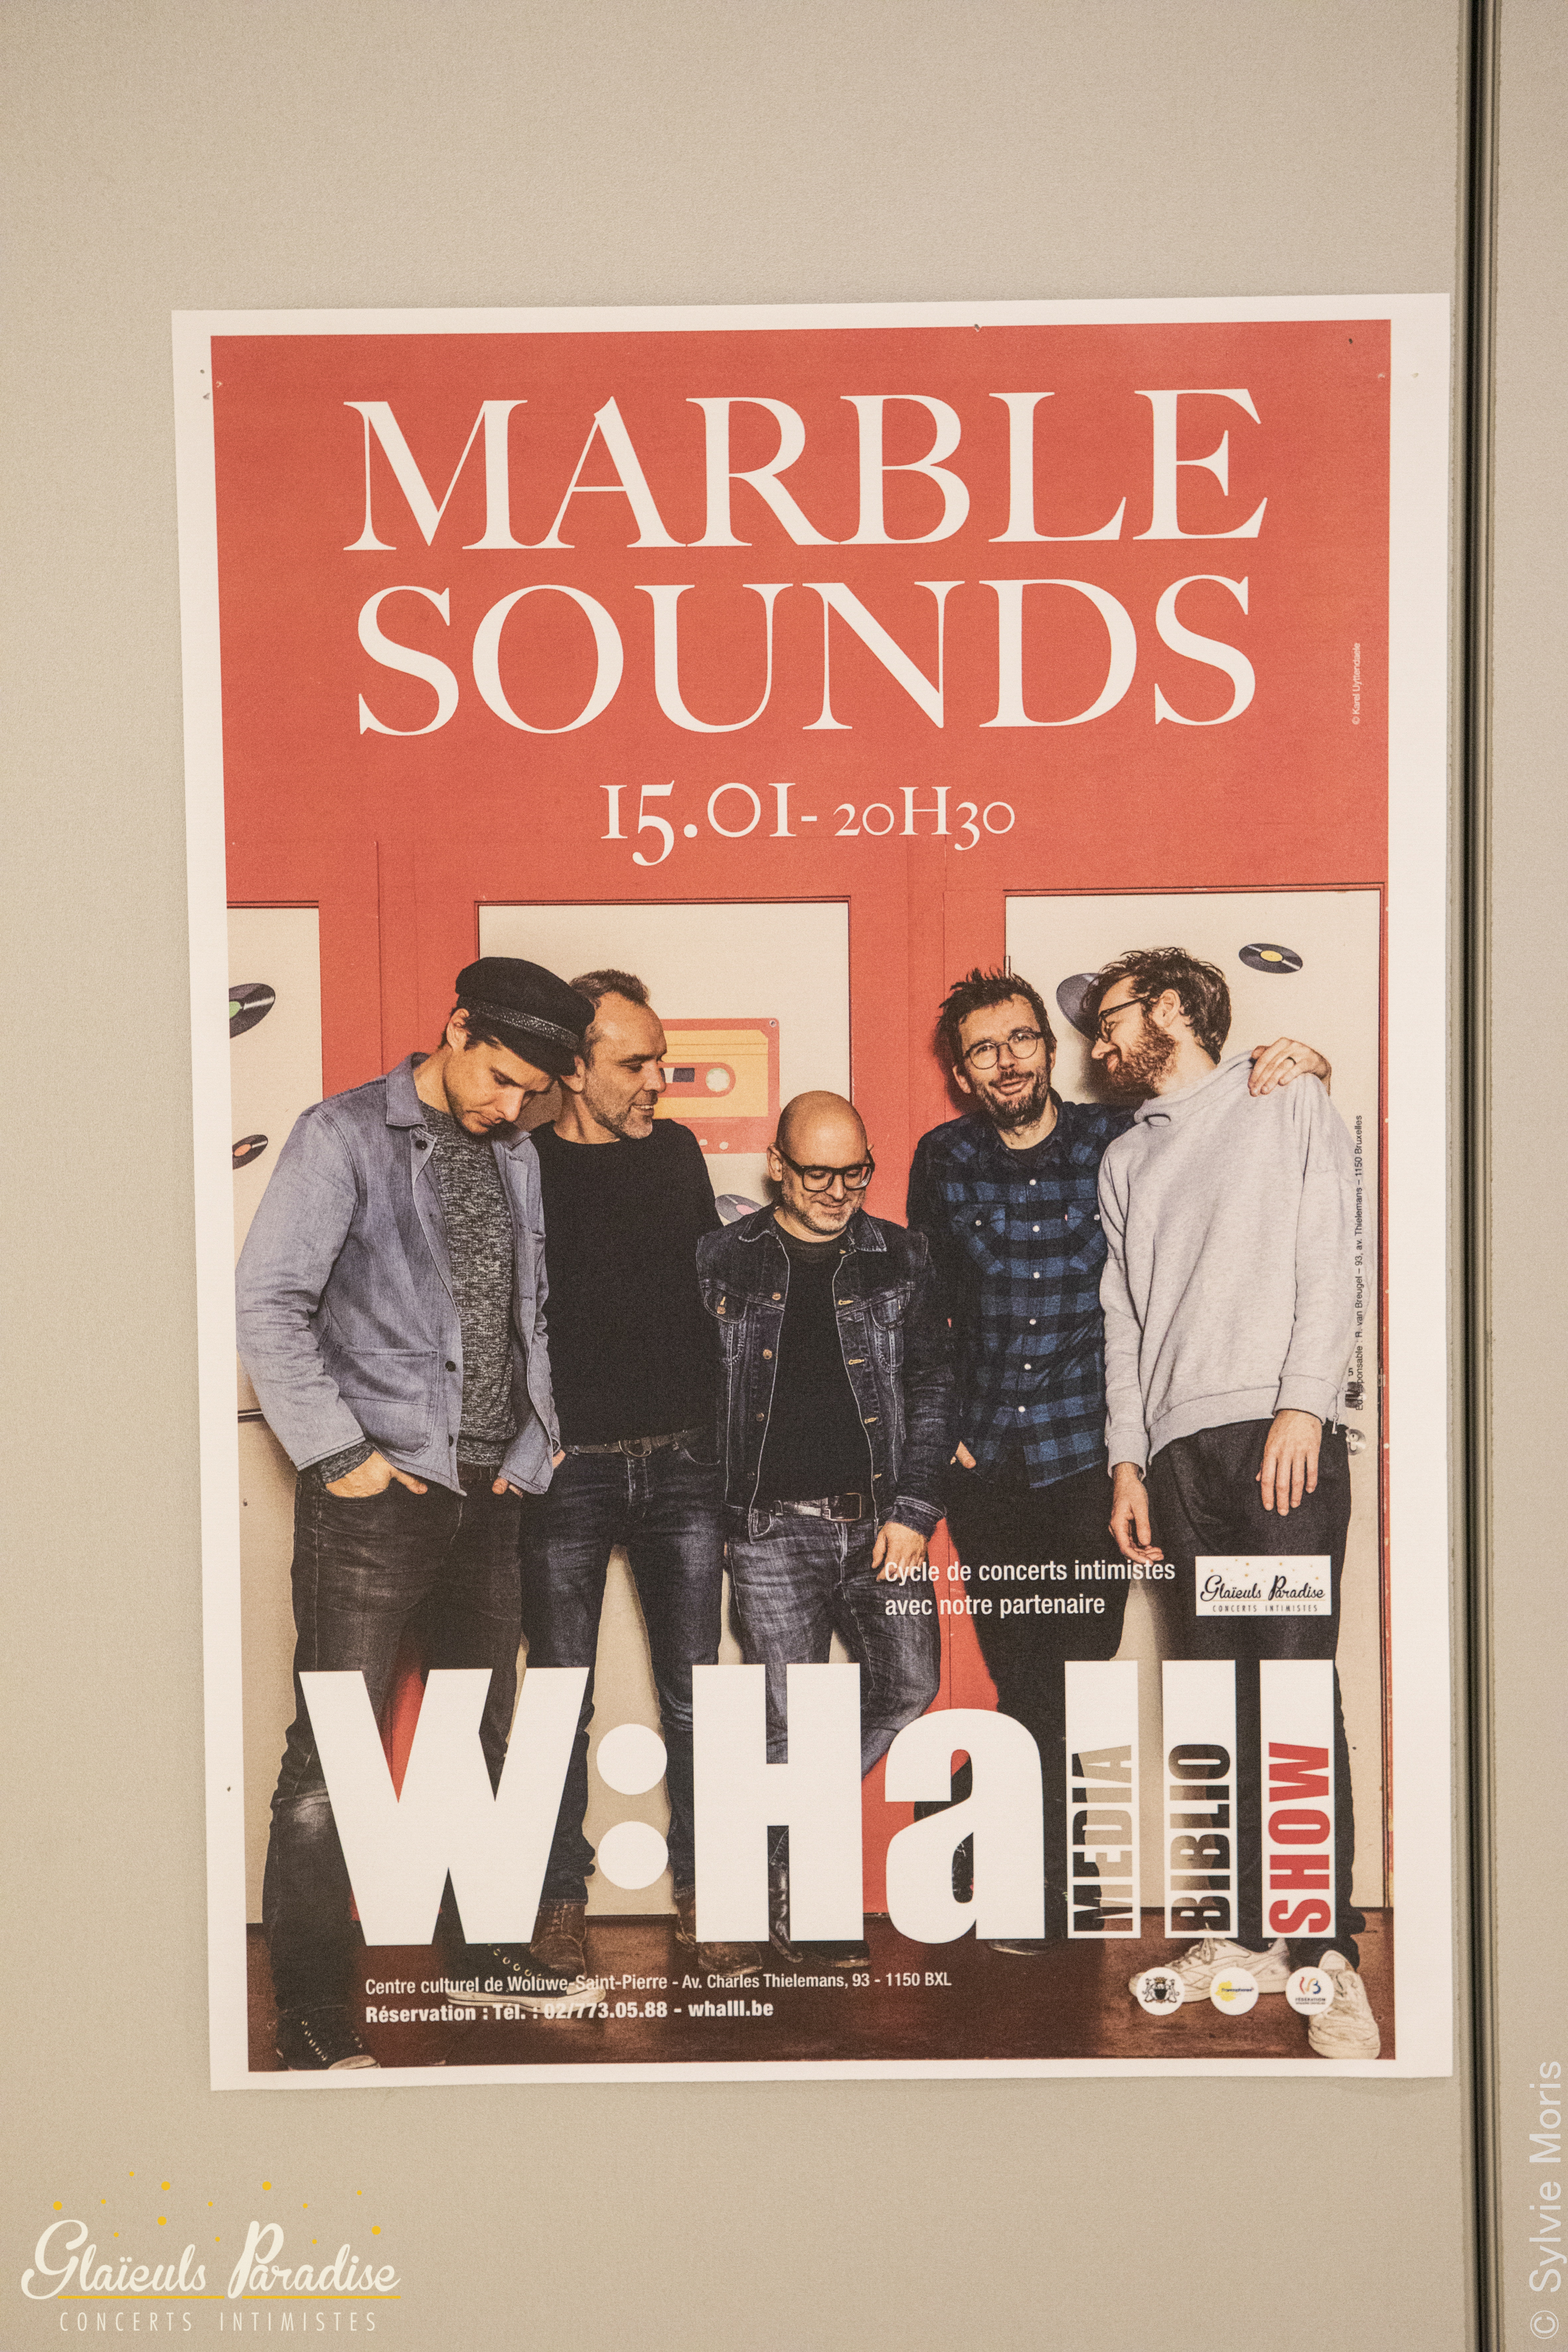 marble_sound_glaieuls_copyright-28